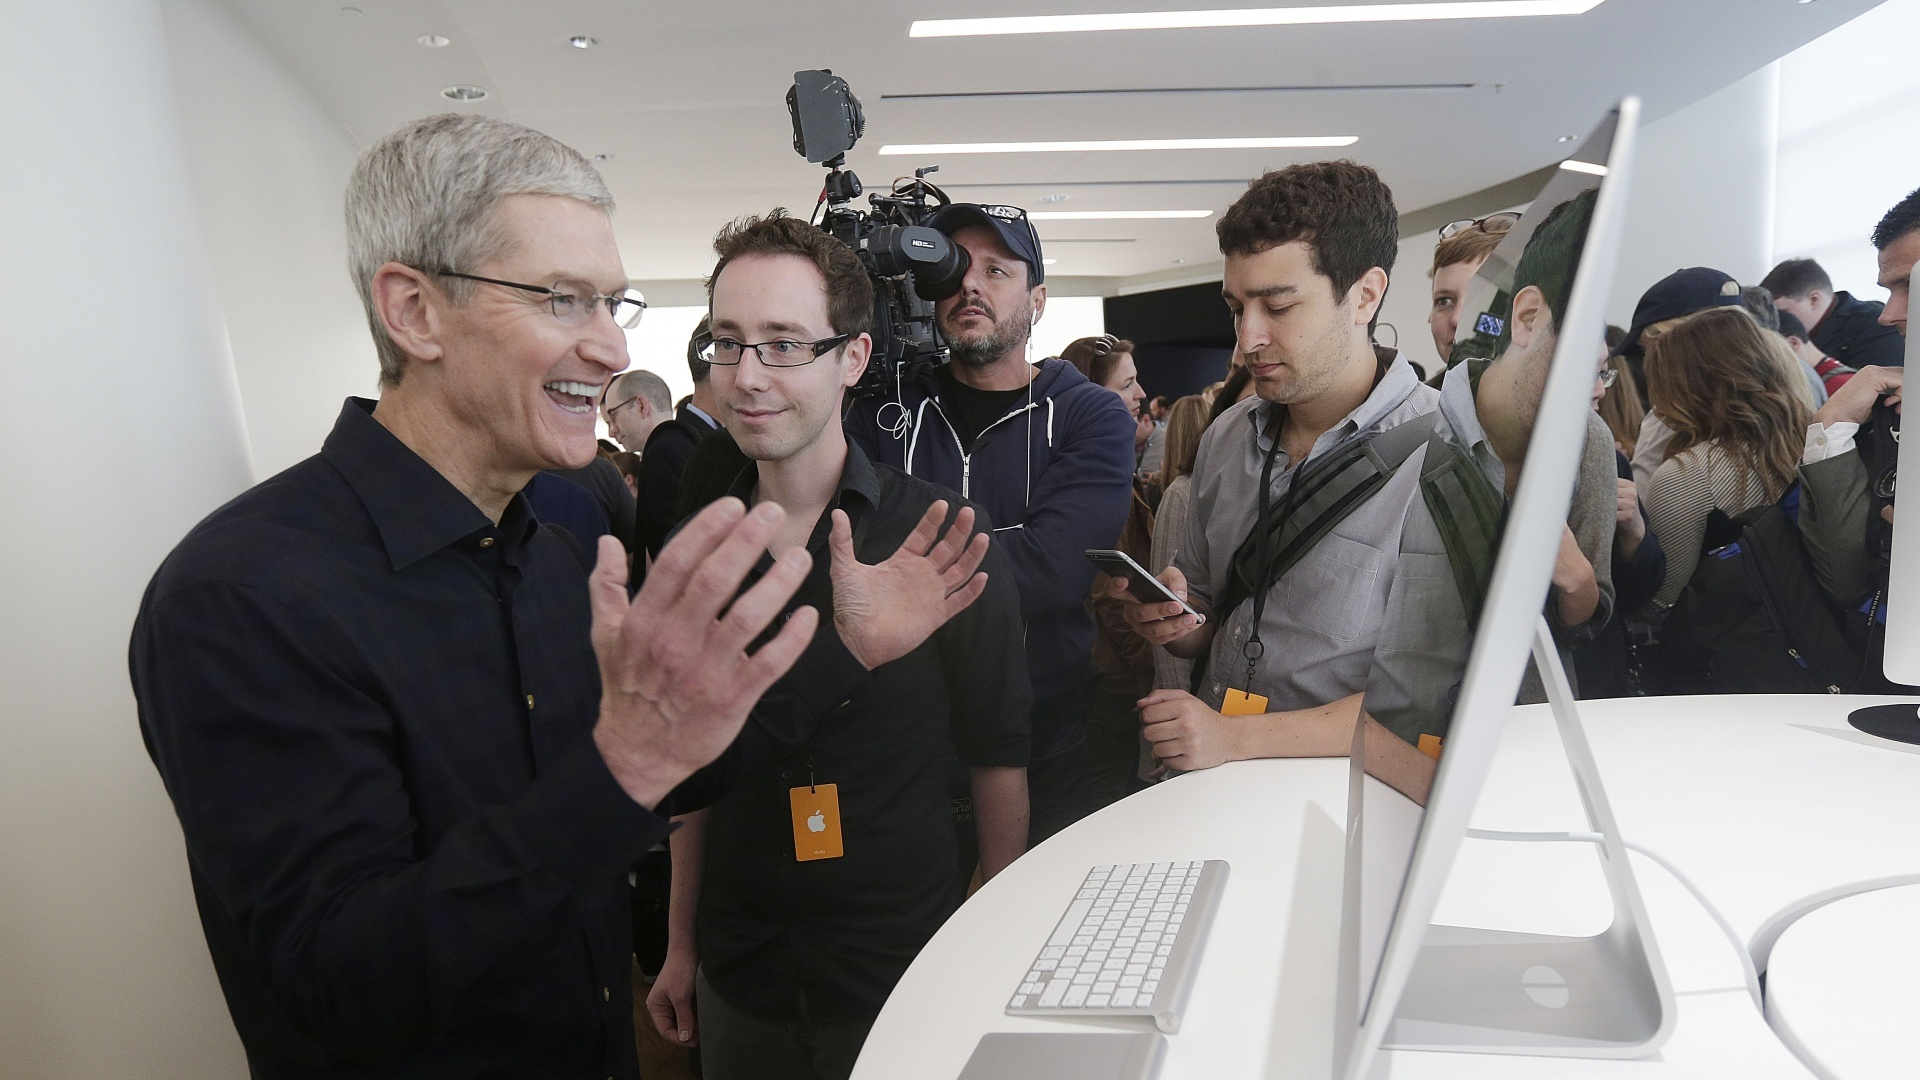 Apple CEO Tim Cook jokes with an employee as he looks at a new iMac